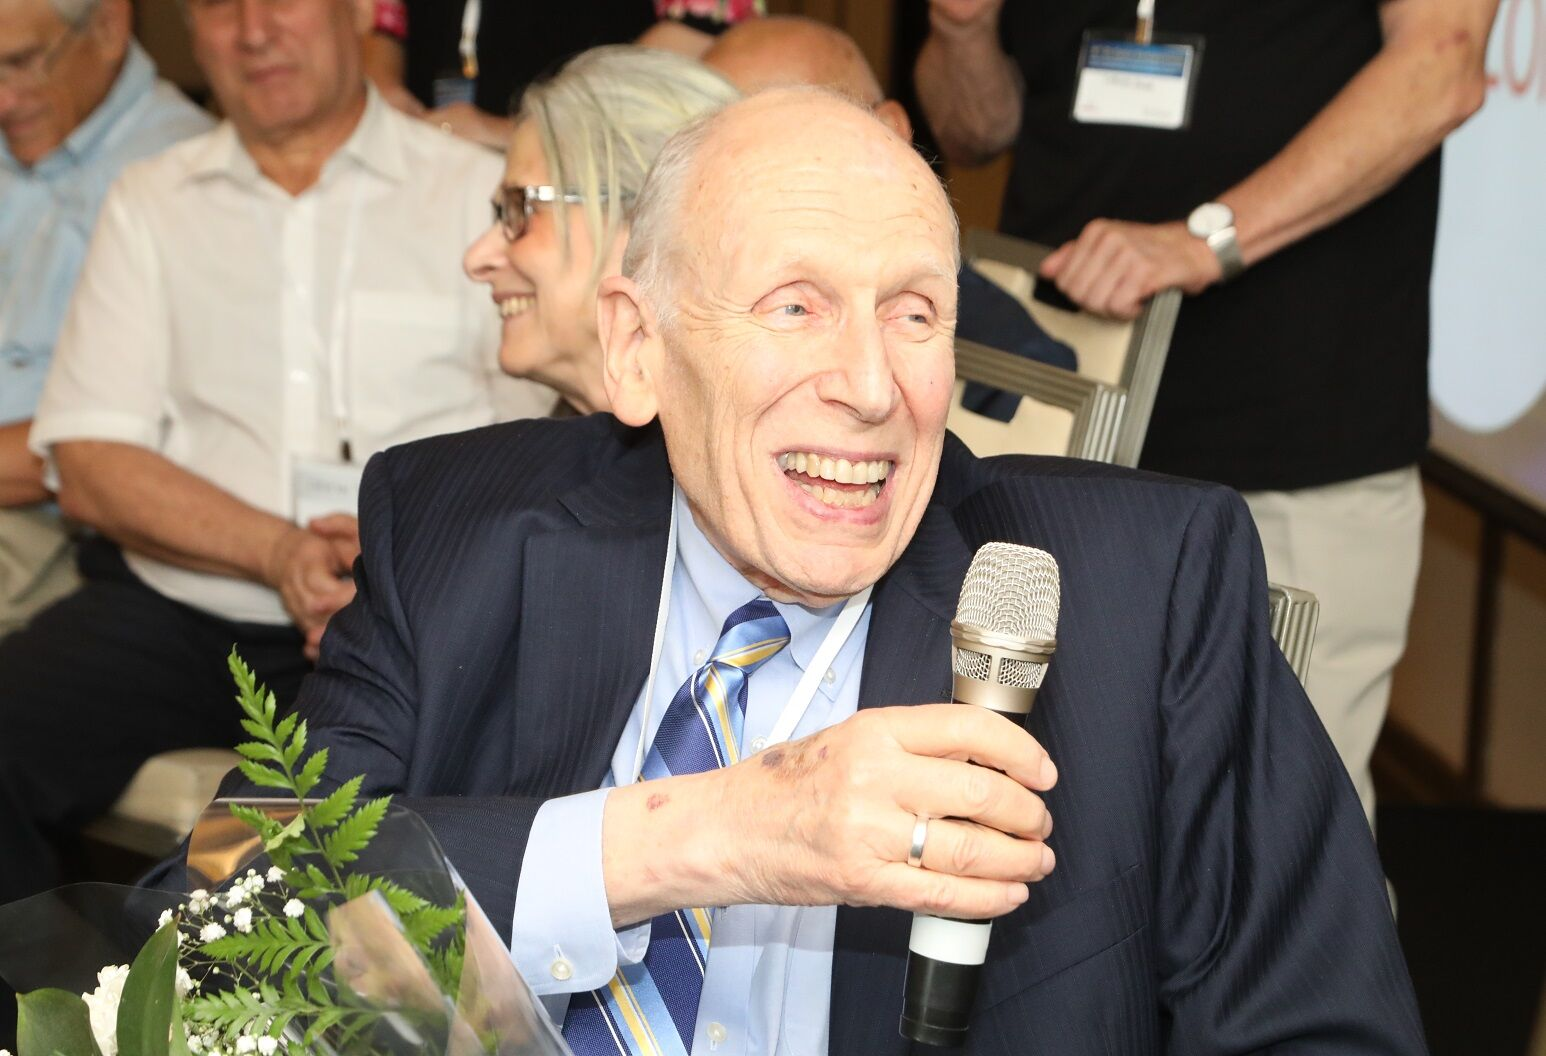 Dr. Jesse Roth was recently honored at D-Cure in Israel. Photo Credit: Shmulik Shalish